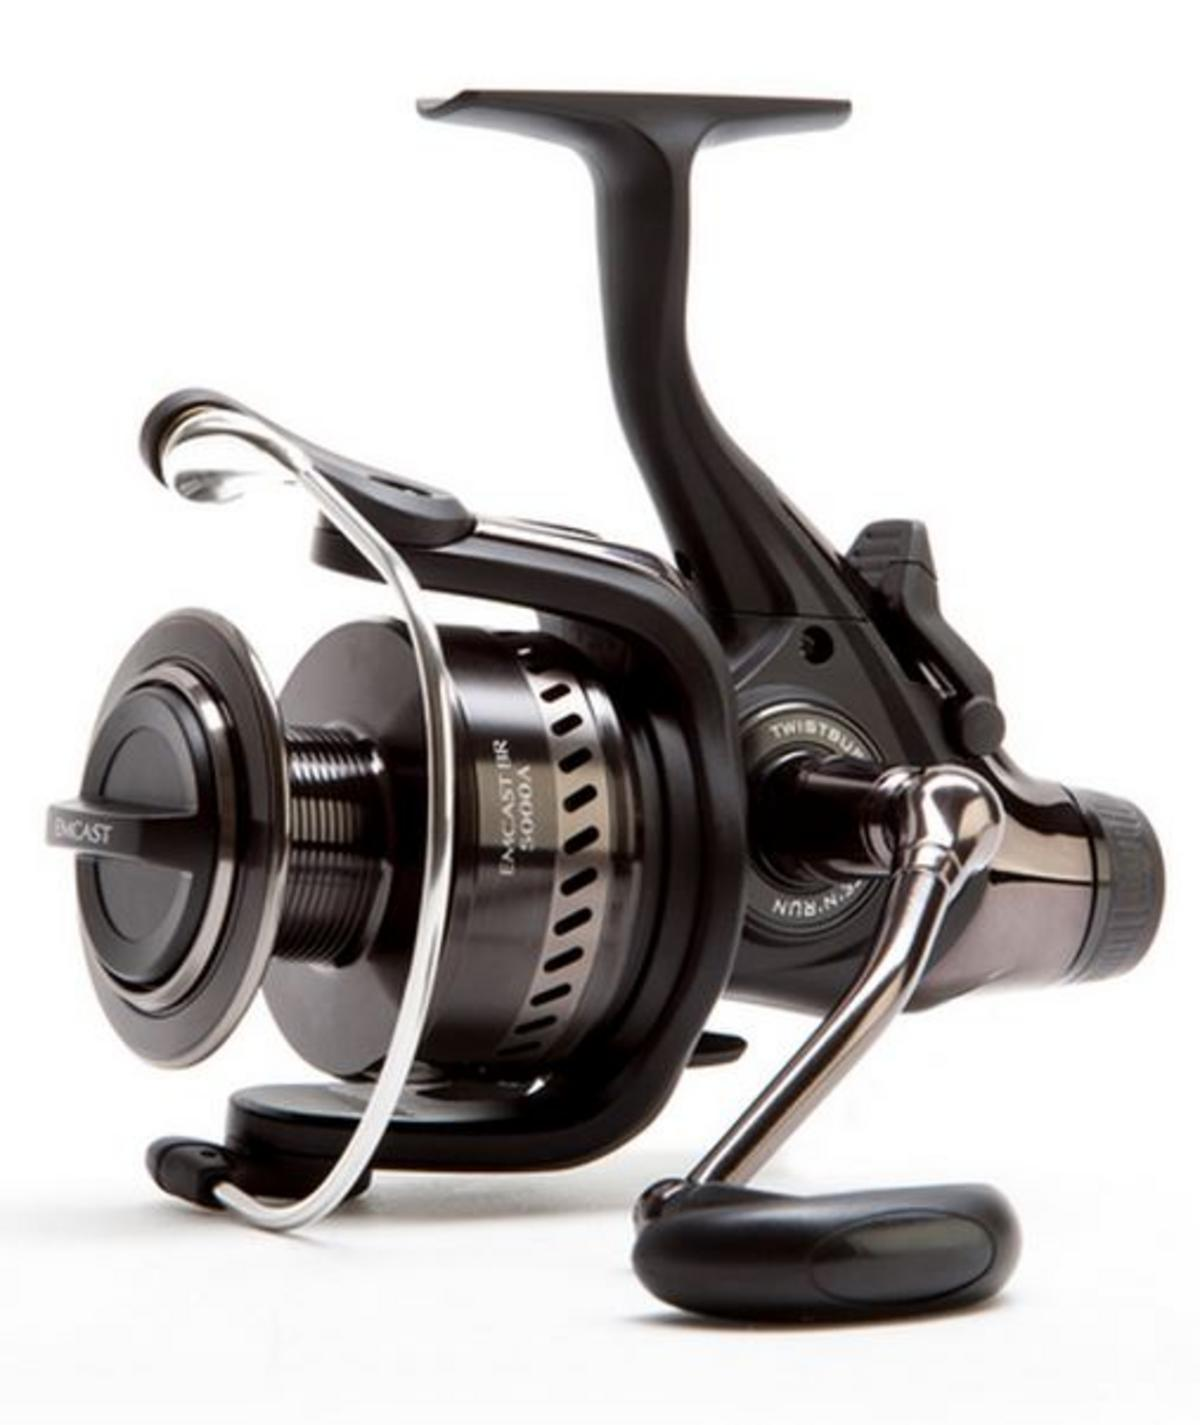 NEW DAIWA EMCAST BR 3500 FISHING REEL MODEL NO. ECBR3500A